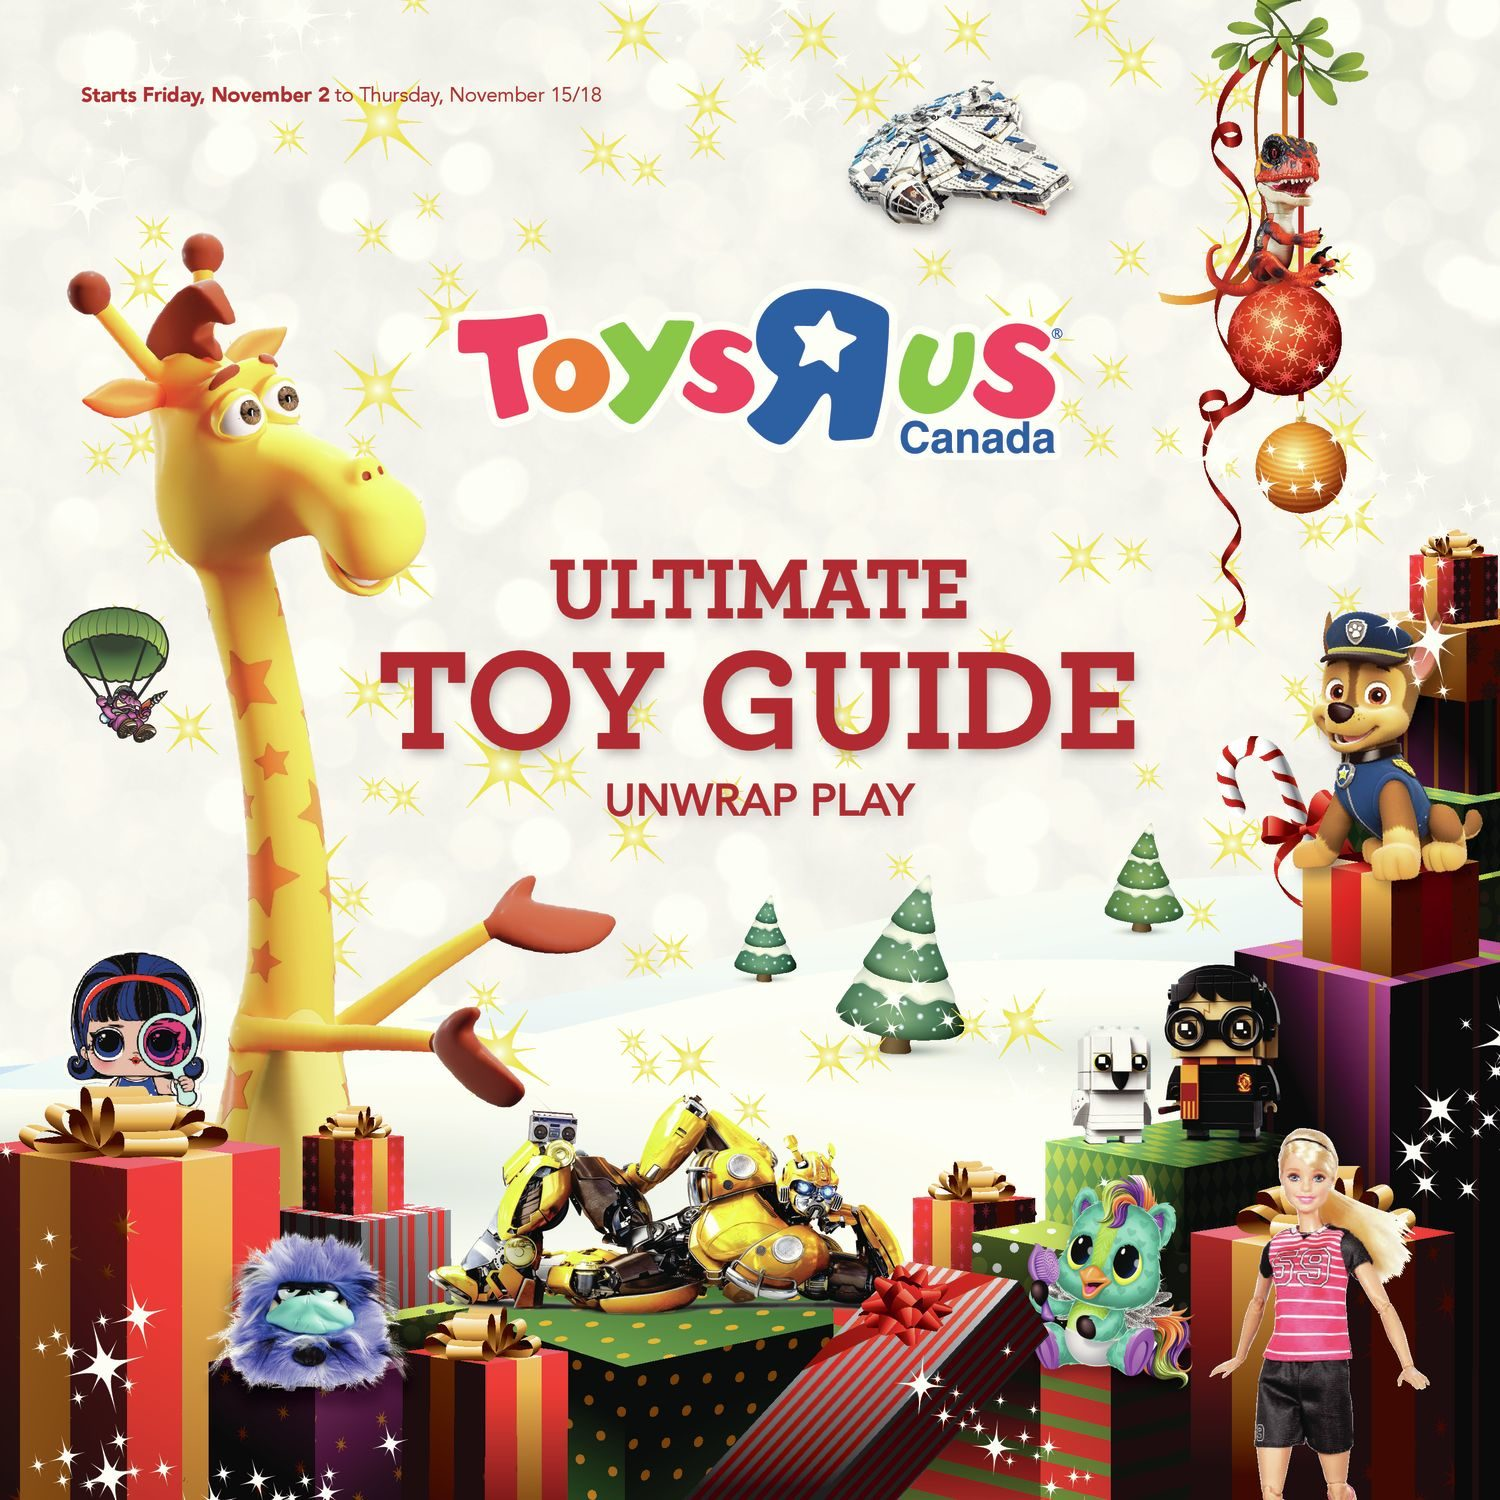 Toys R Us Weekly Flyer - Ultimate Toy Guide 2018 - Nov 2 – 15 ...